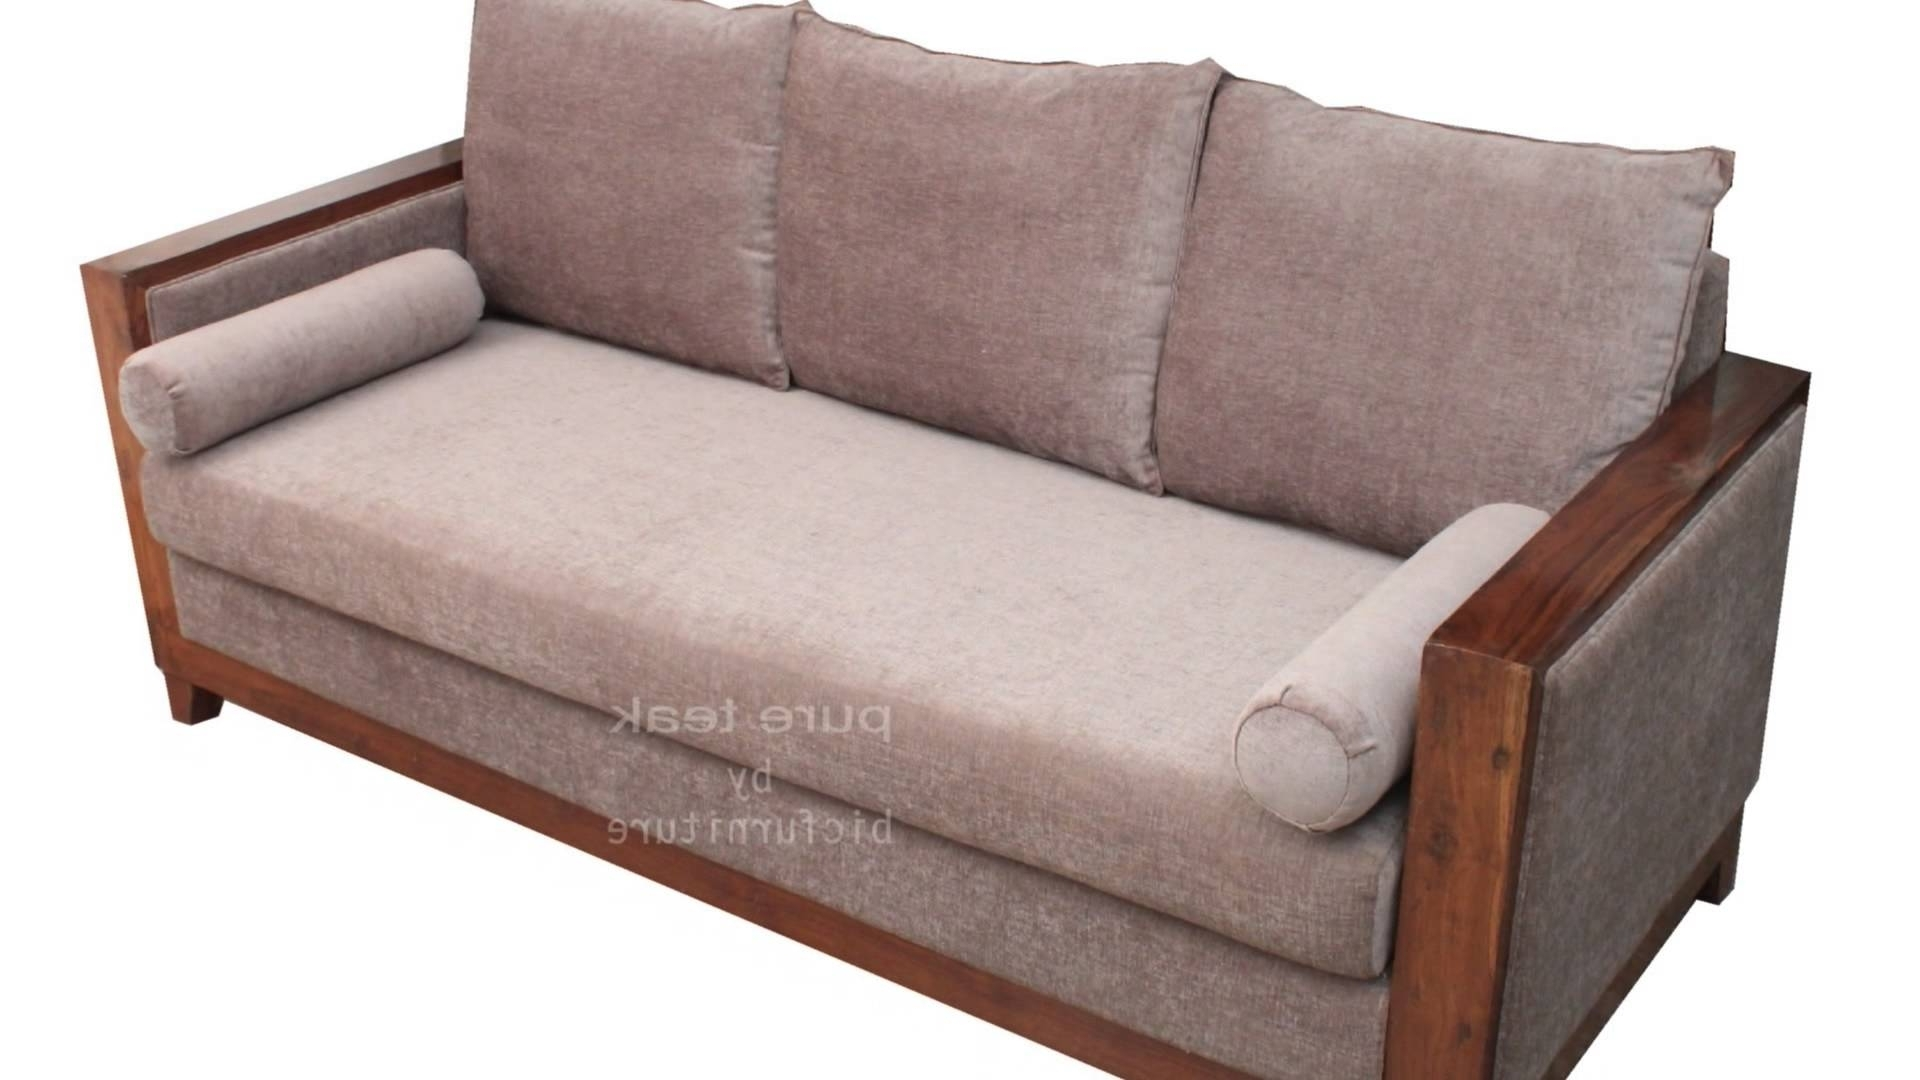 Comfortable Sofas And Chairs Regarding Most Popular Leather Sofa And Chair Sets Covers Small Seater Settee Chairs (View 19 of 20)